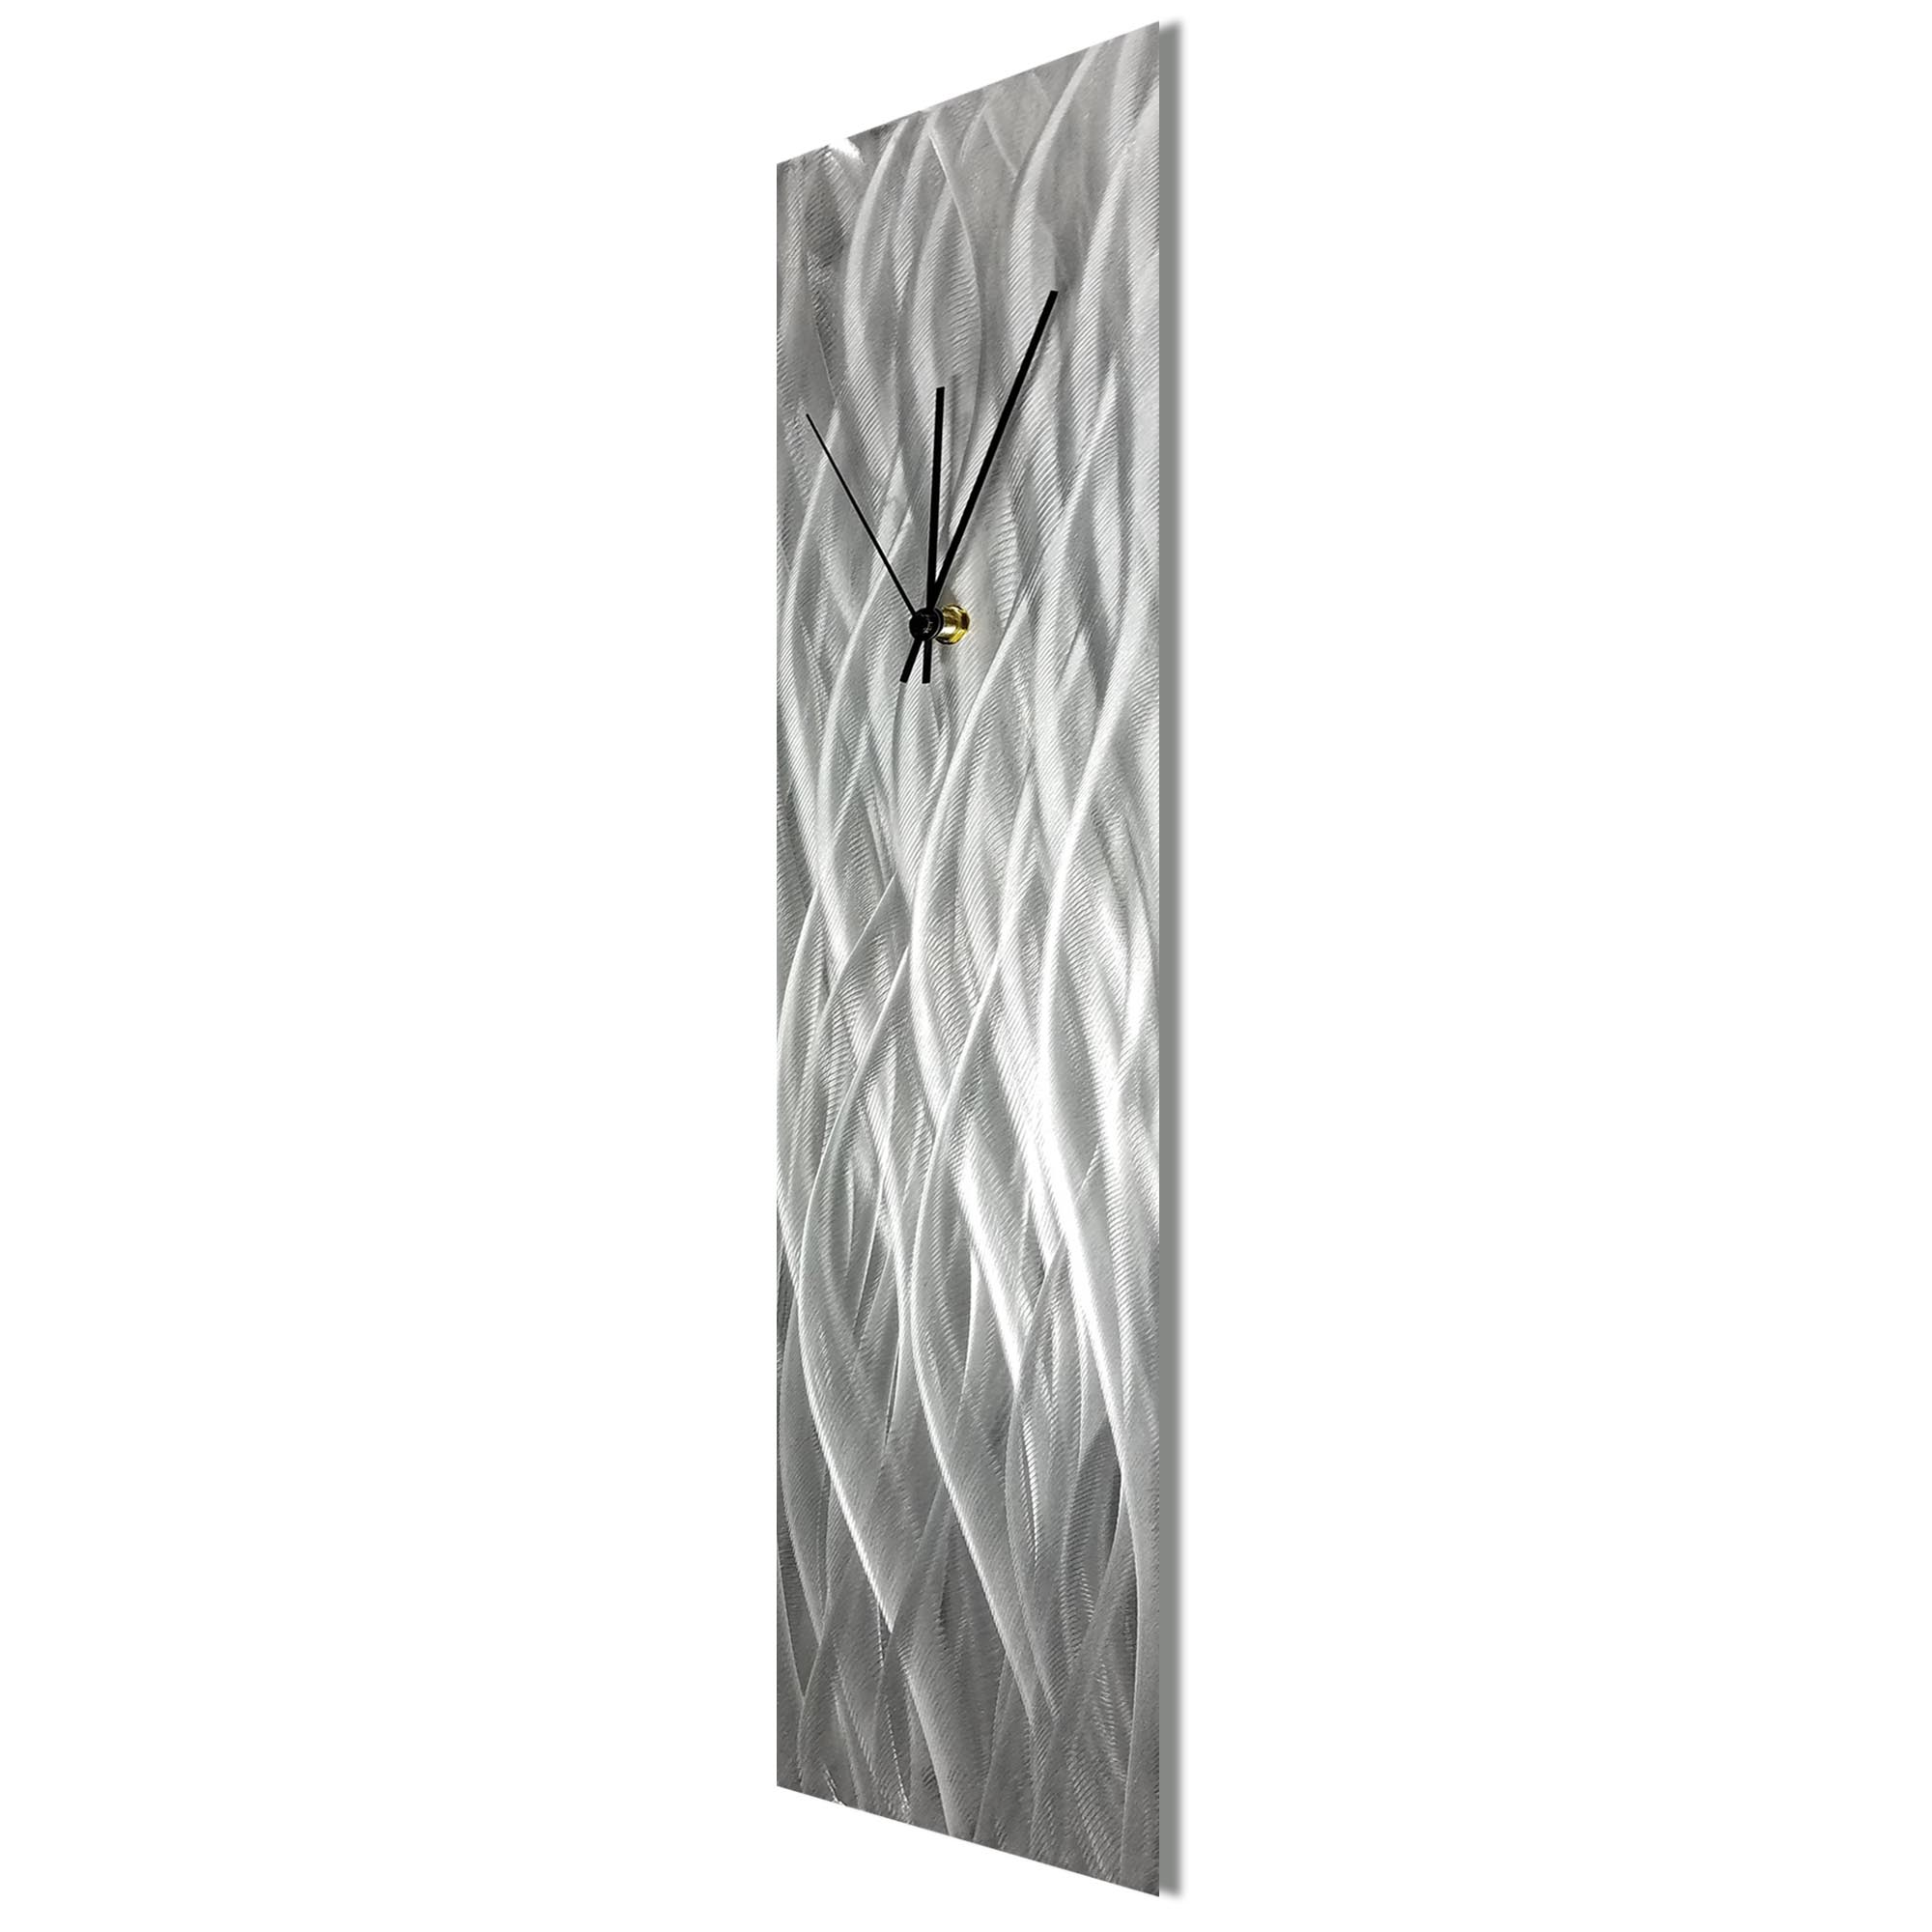 Silver Waves Clock by Helena Martin Contemporary Wall Clock on Natural Aluminum - Image 2